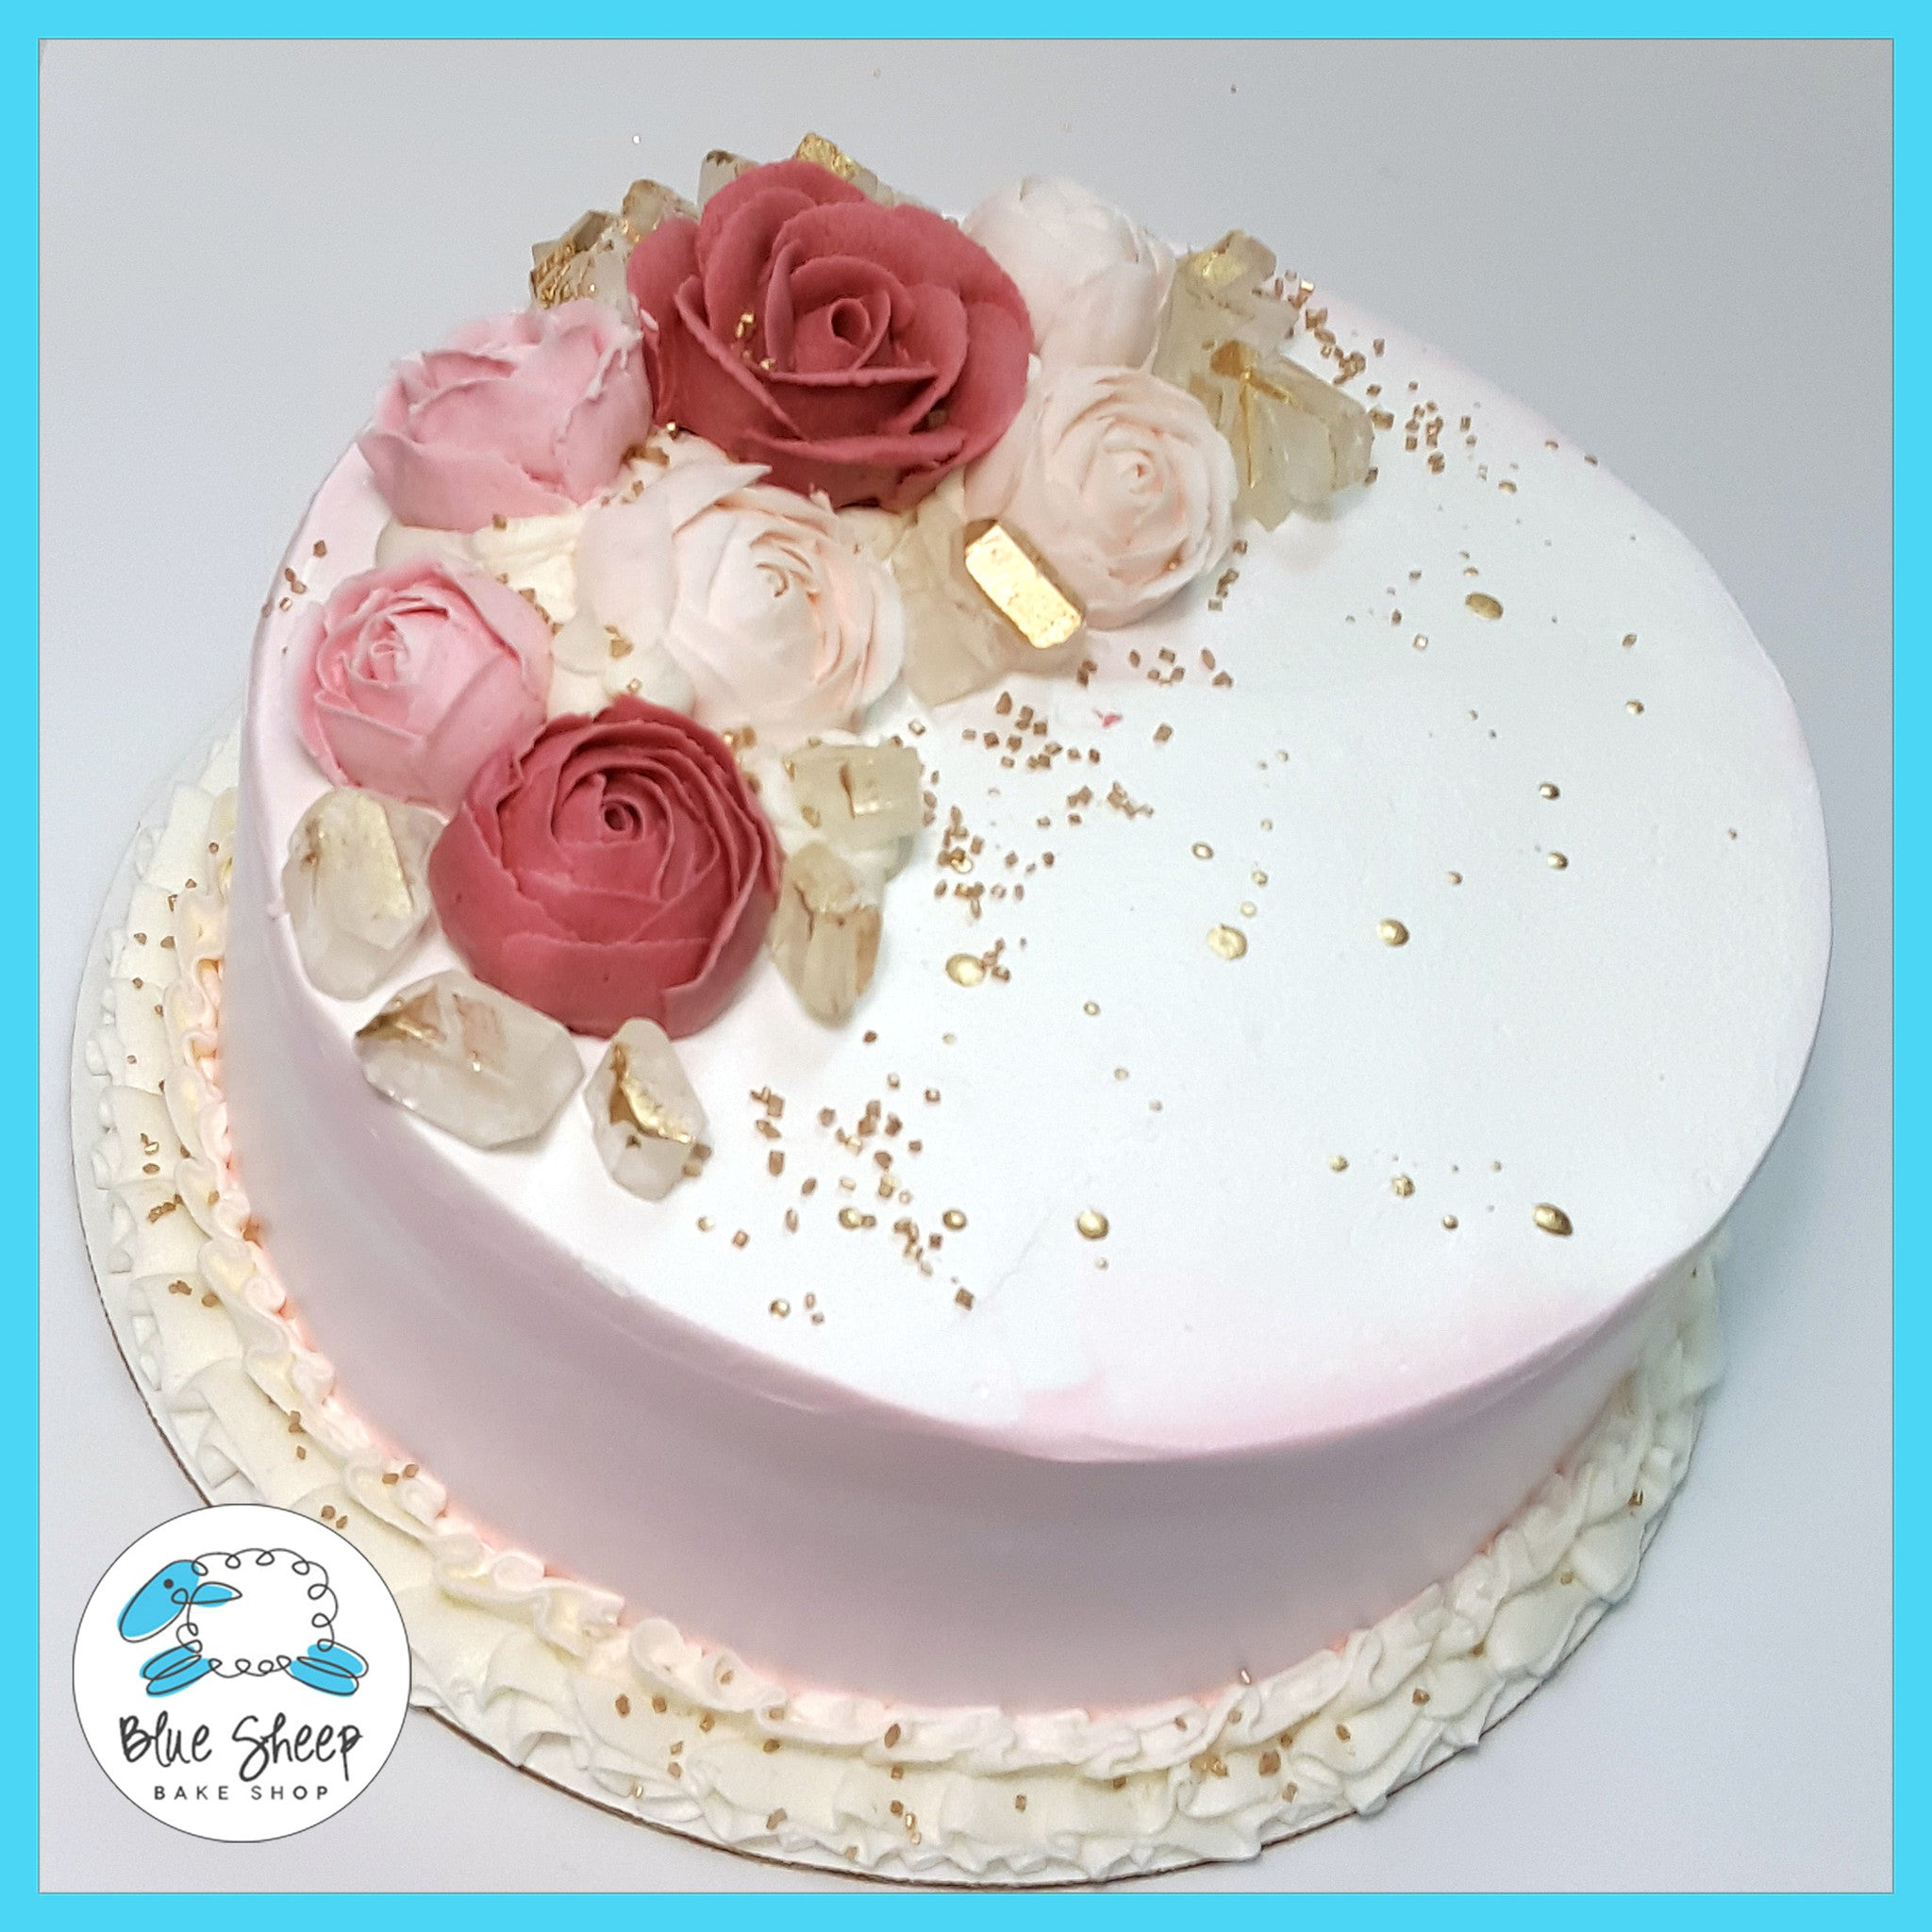 Pink Watercolor Ice Cream Cake With Roses Nj Blue Sheep Bake Shop